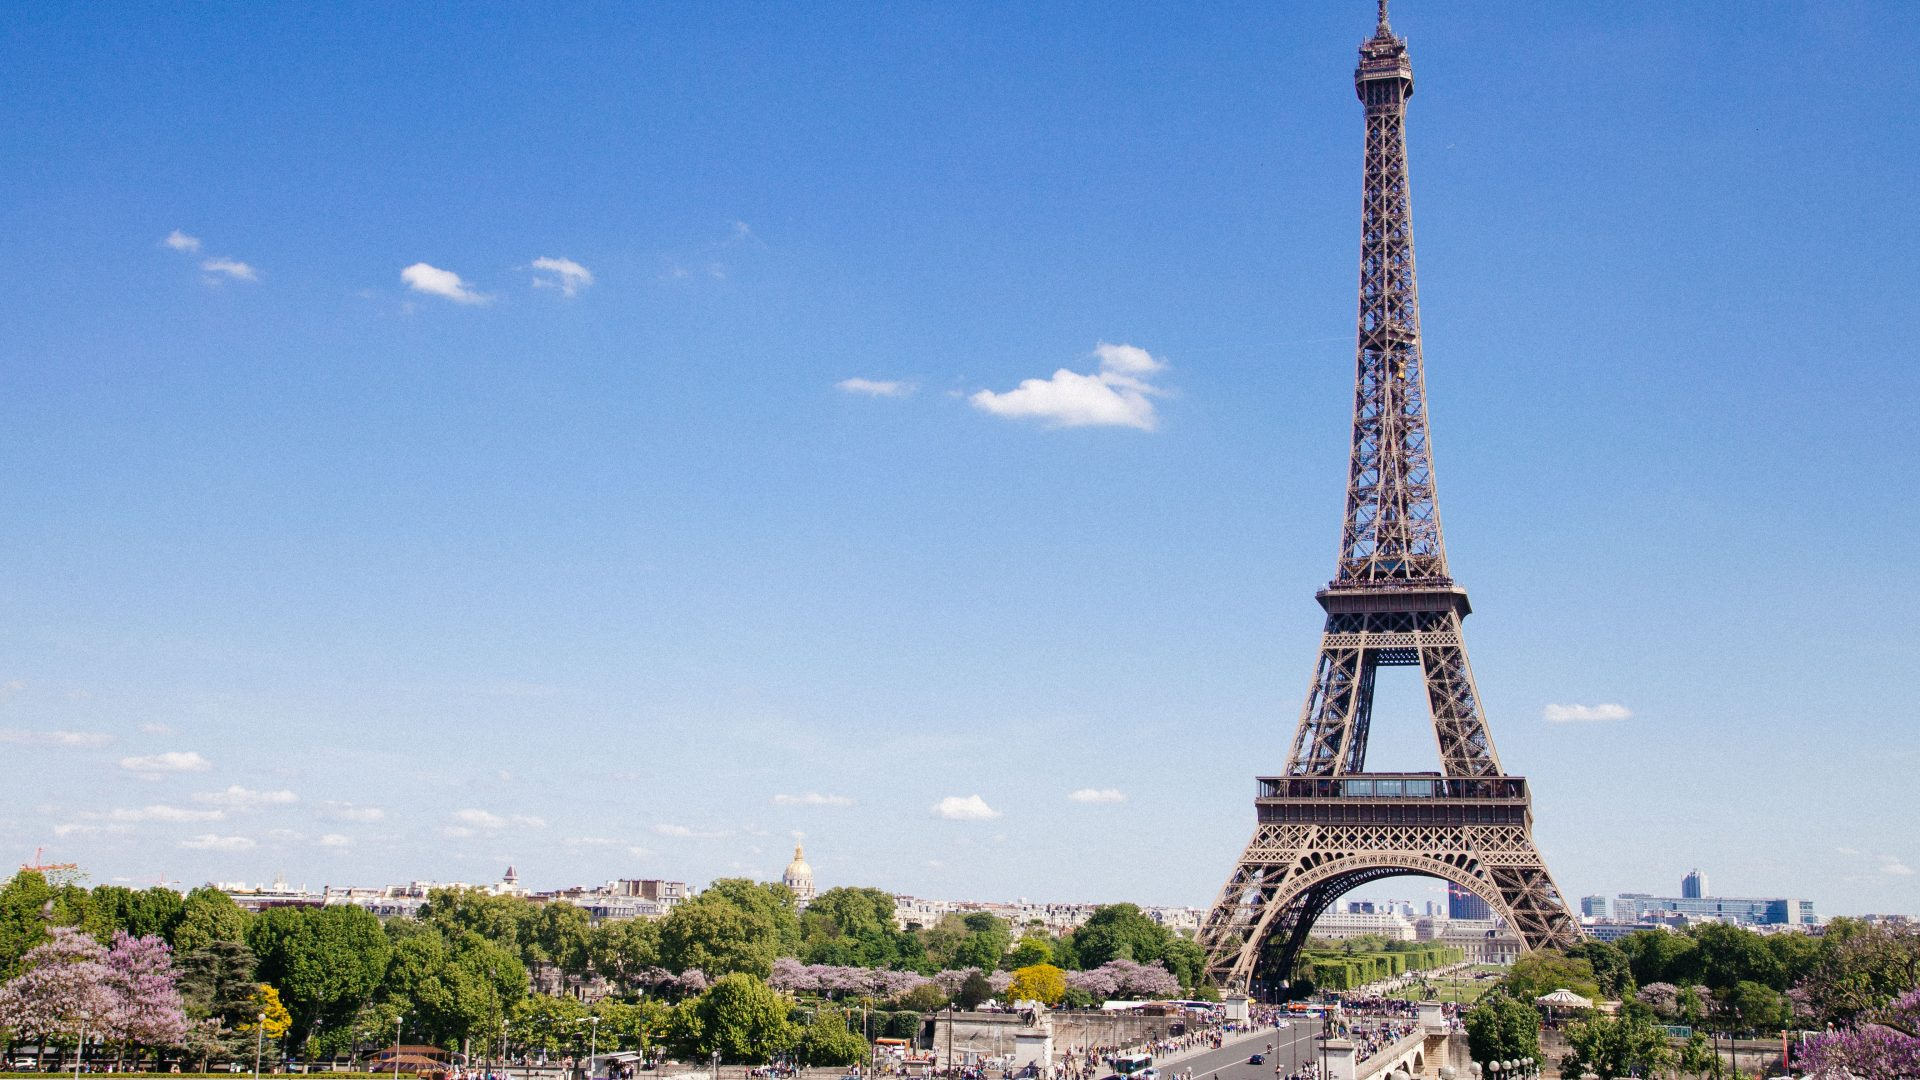 The Eiffel Tower Is Going To Produce Its Own Wine, With The First Bottle Available Next Spring